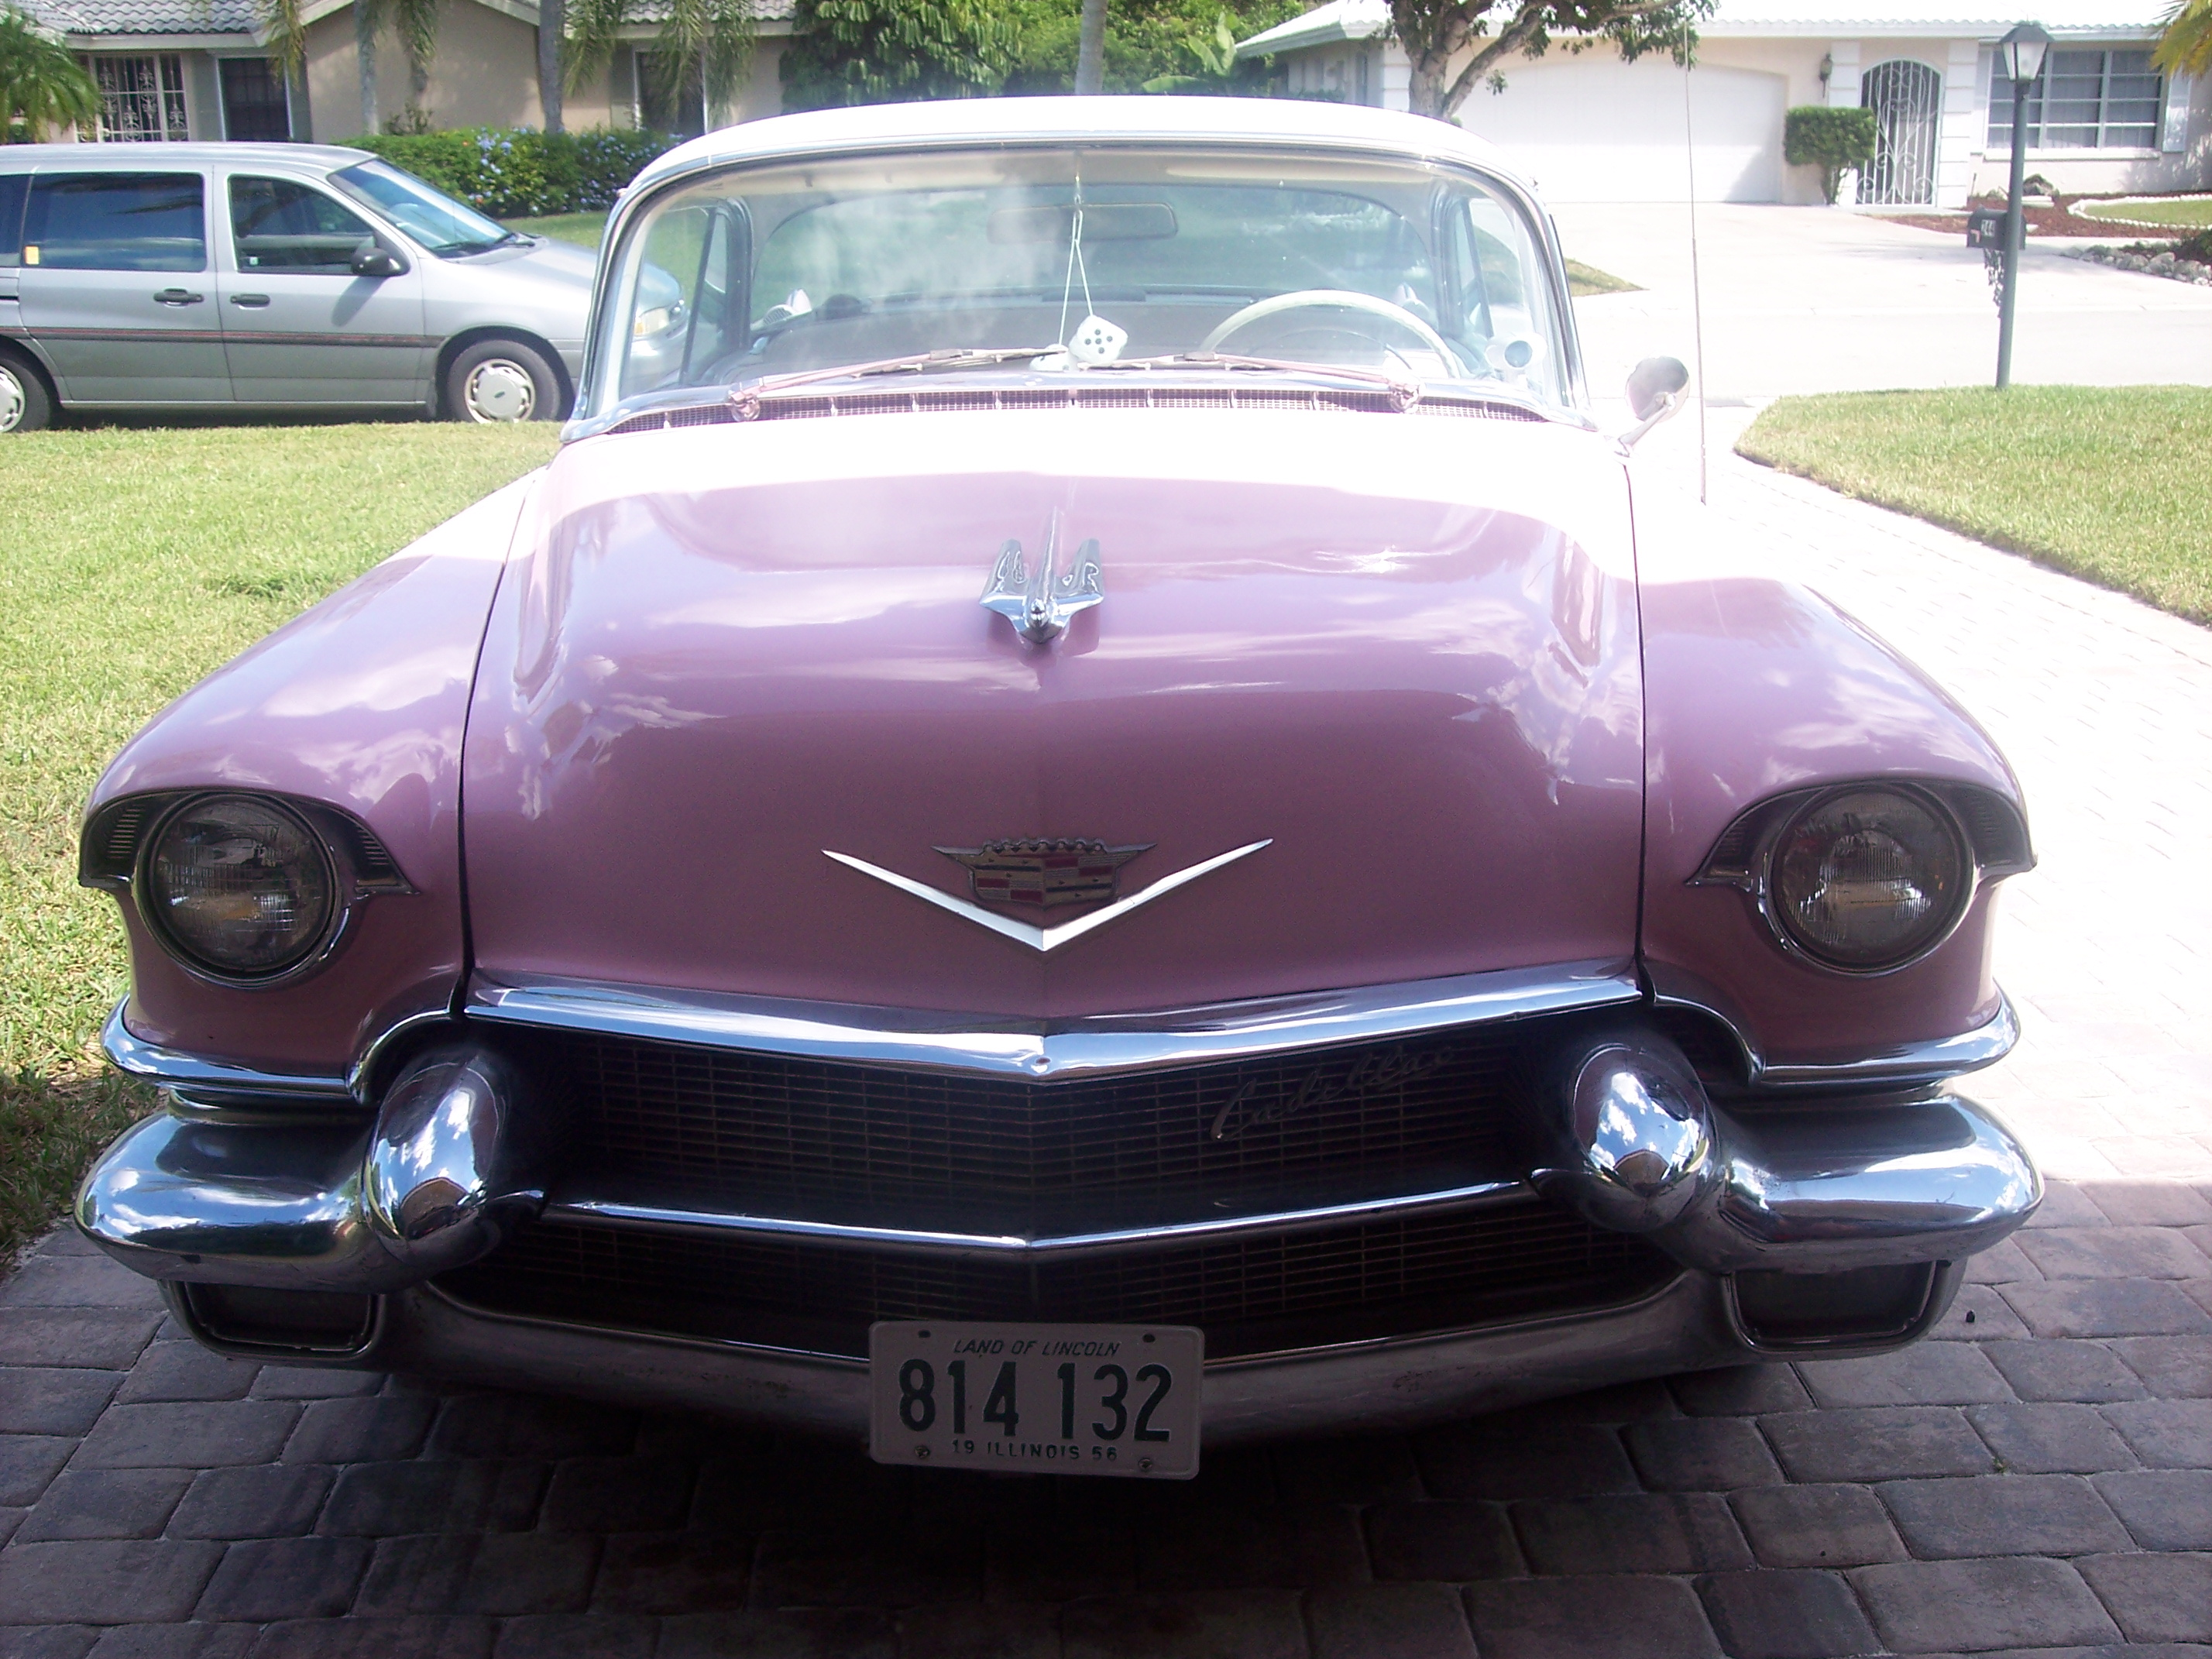 Joe's 1956 Cadillac Coupe deVille